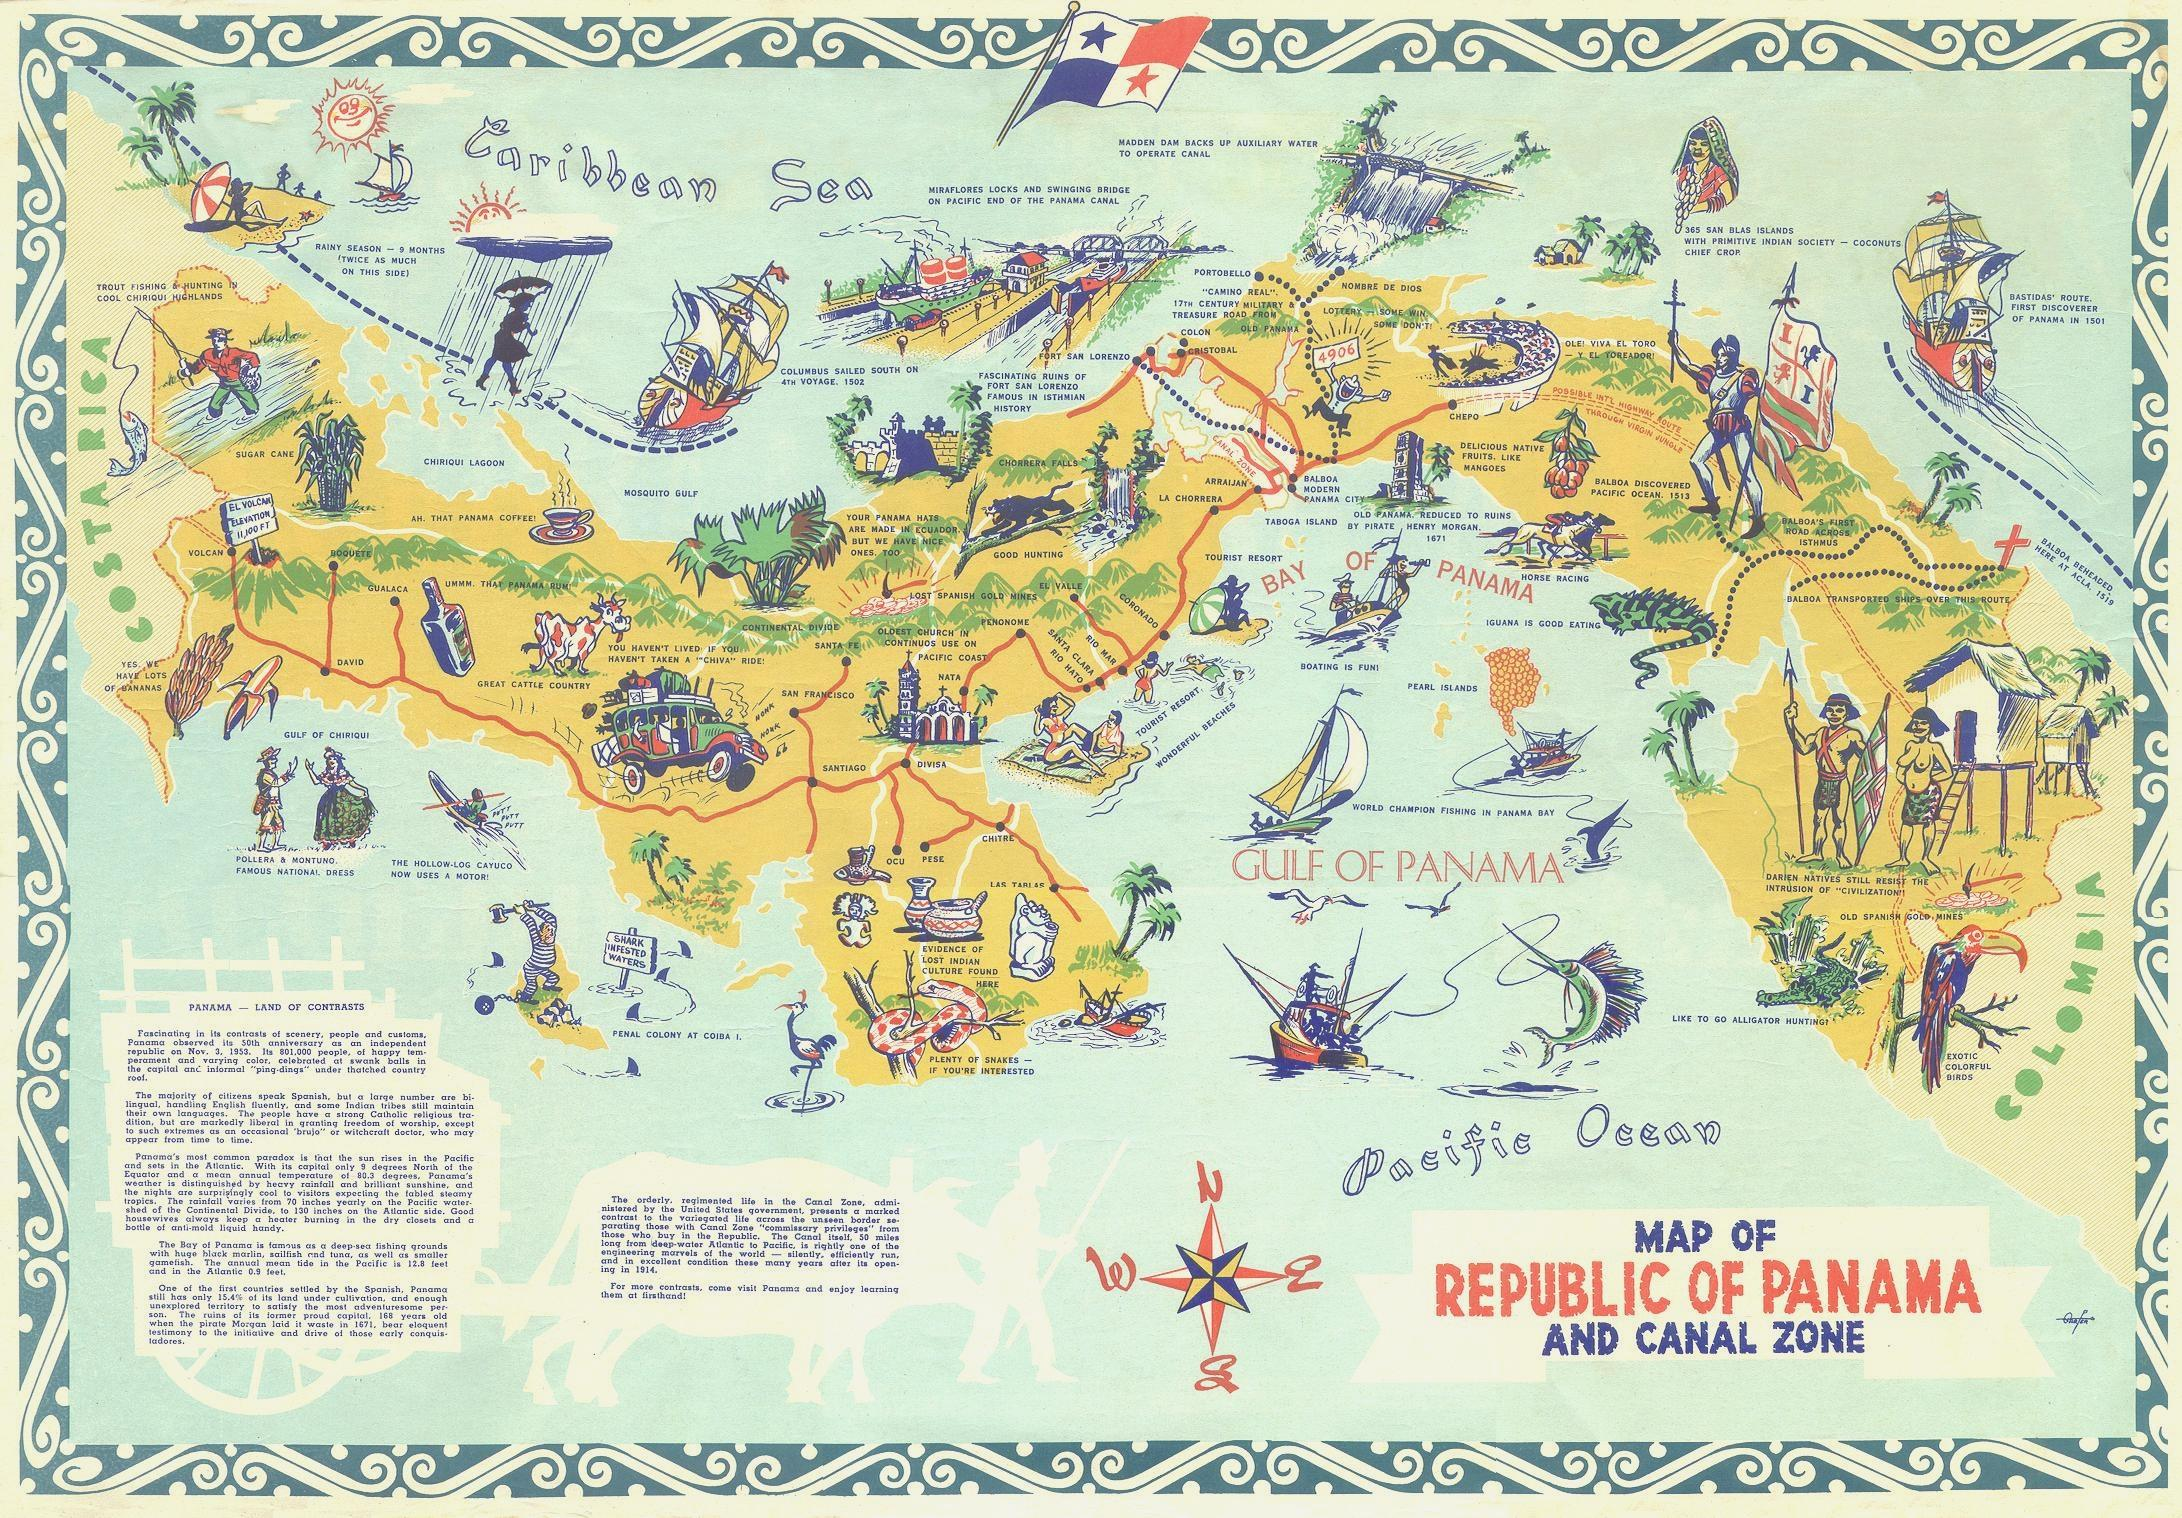 political map of cuba with Panama Tourist Map on The American Nations Today 420259872 in addition Georgias David Attacks The Russian Goliath And Lives To Tell The Tale in addition Irak Y Sus Riquezas Los Anos De Colonia further Cuban Map further Gjeldende Kart Over Russland.